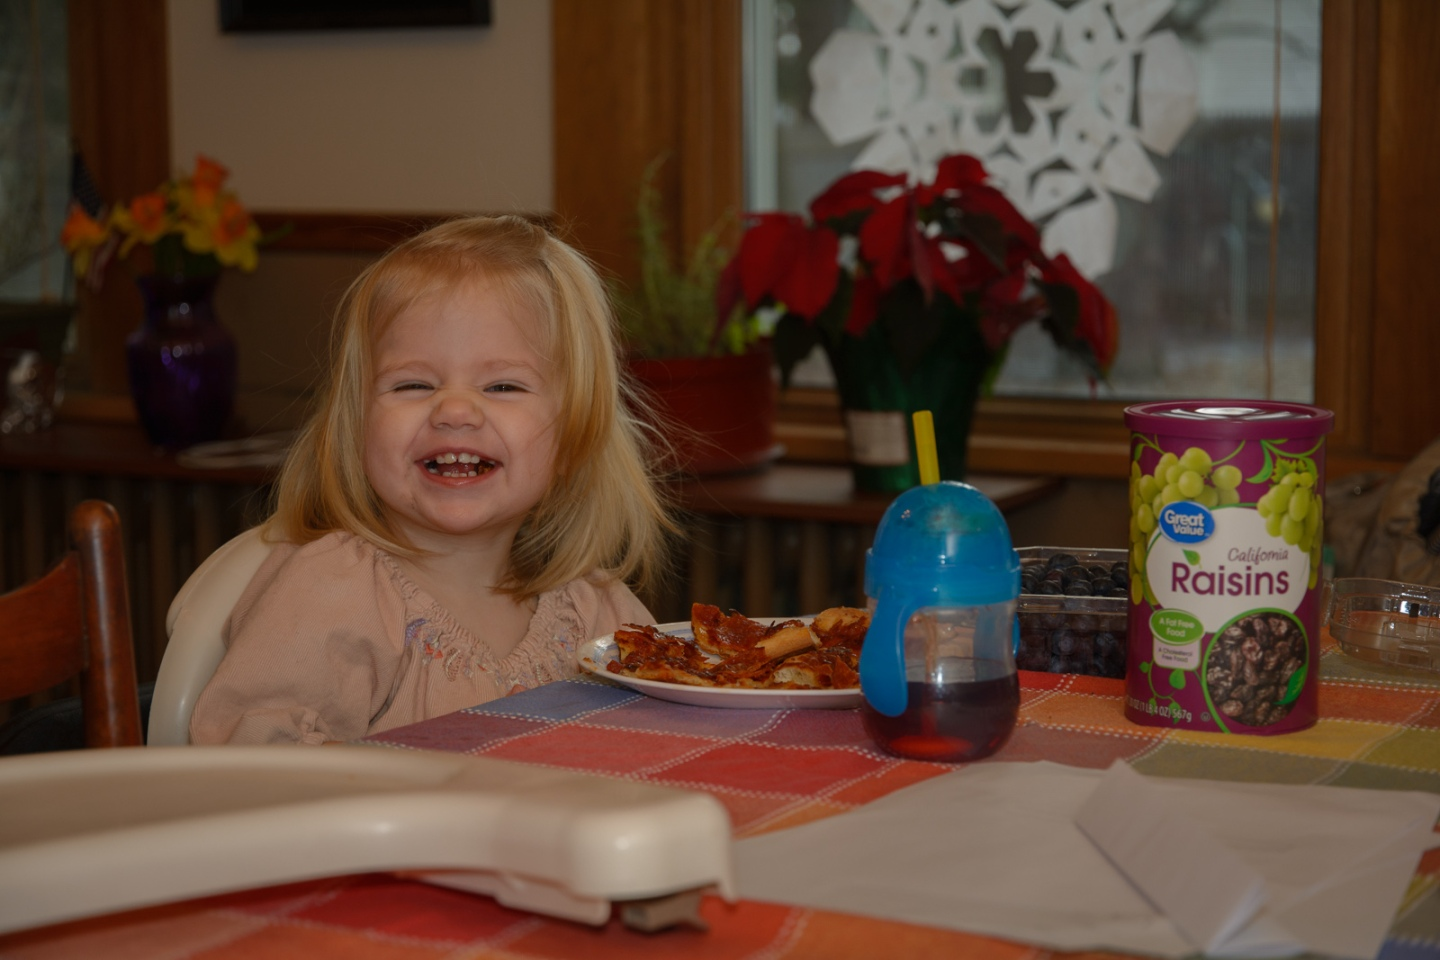 Smiling toddler sitting at table in-home documentary photogaph